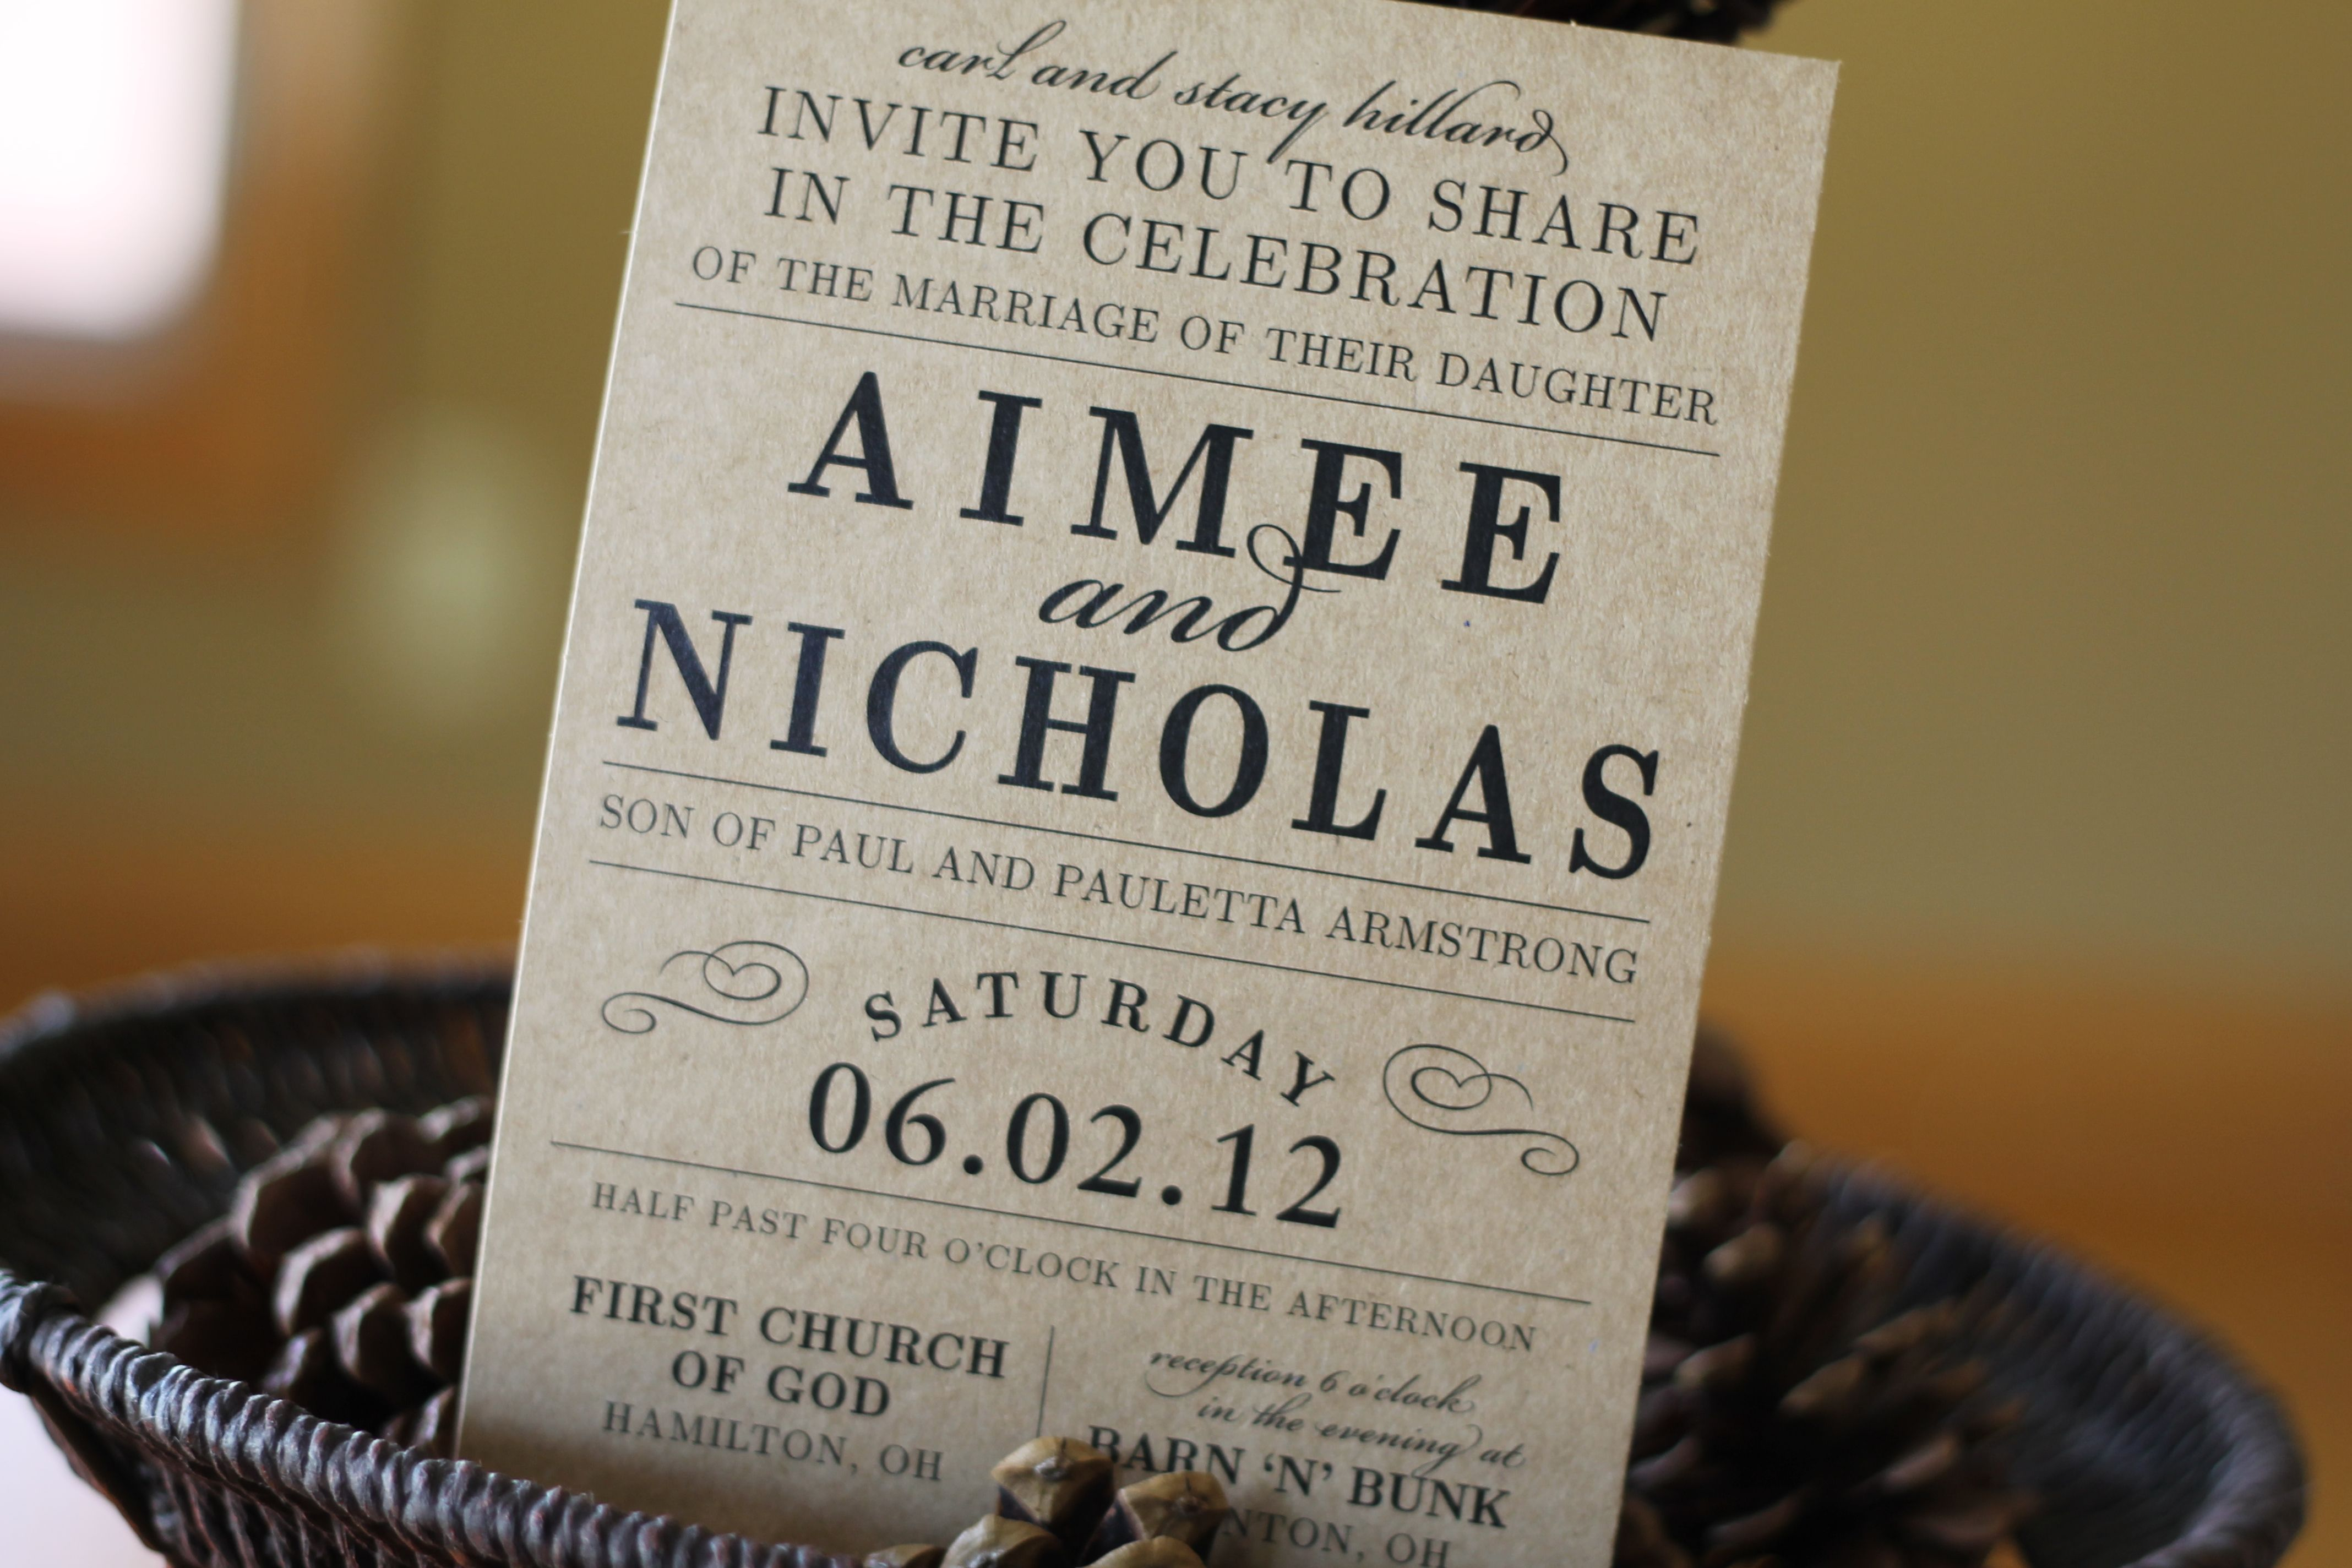 Country Chic Wedding Invitations and get inspiration to create nice invitation ideas